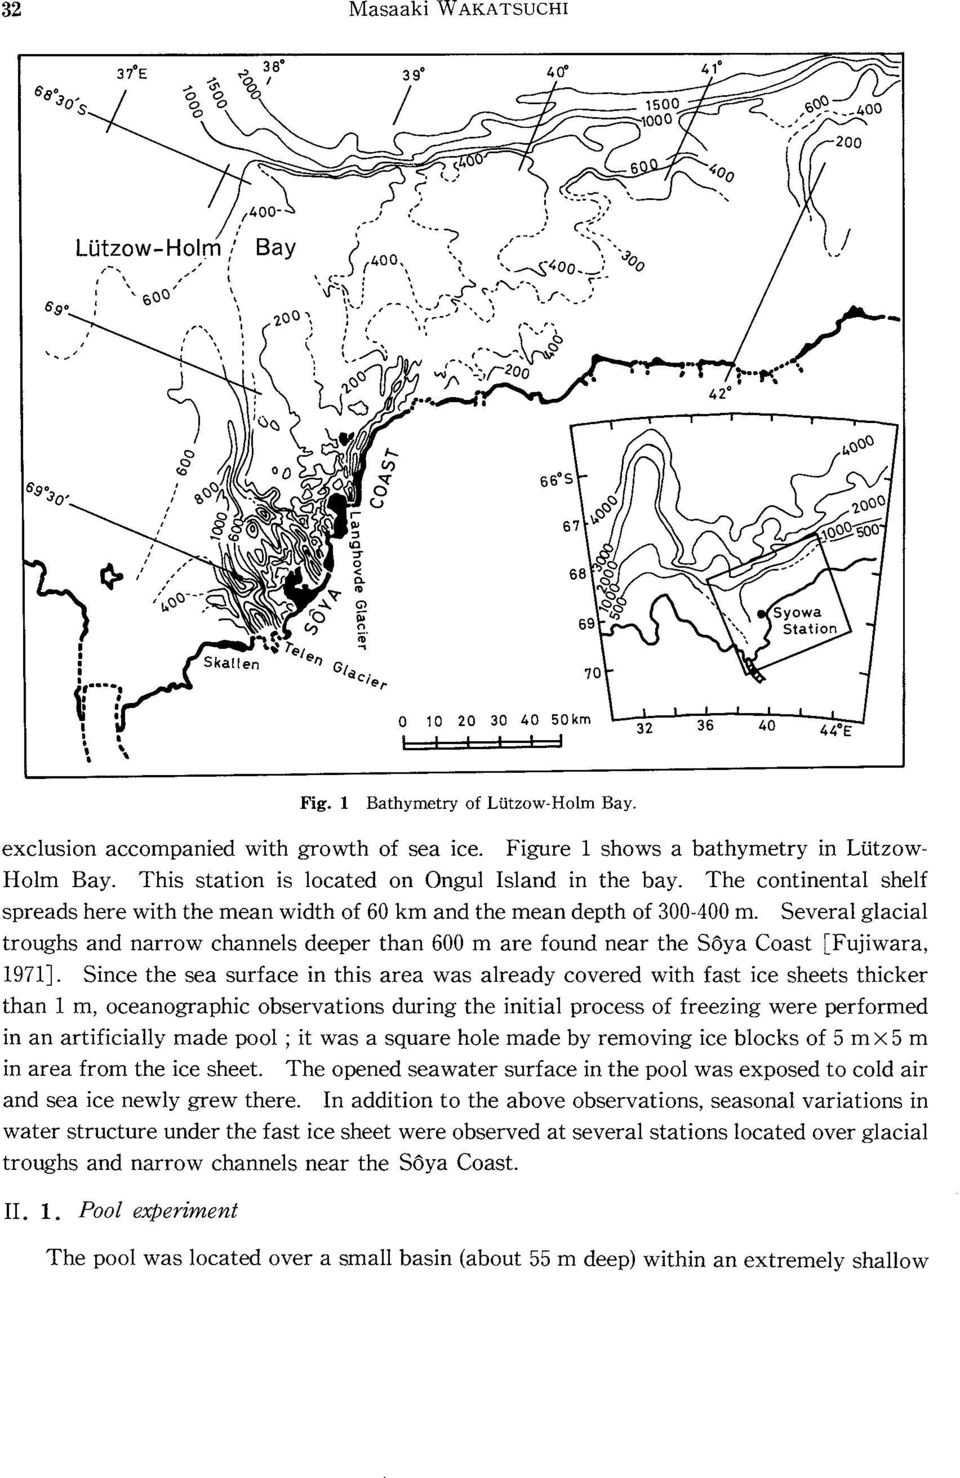 Several glacial troughs and narrow channels deeper than 600 m are found near the S6ya Coast [Fujiwara, 1971J.